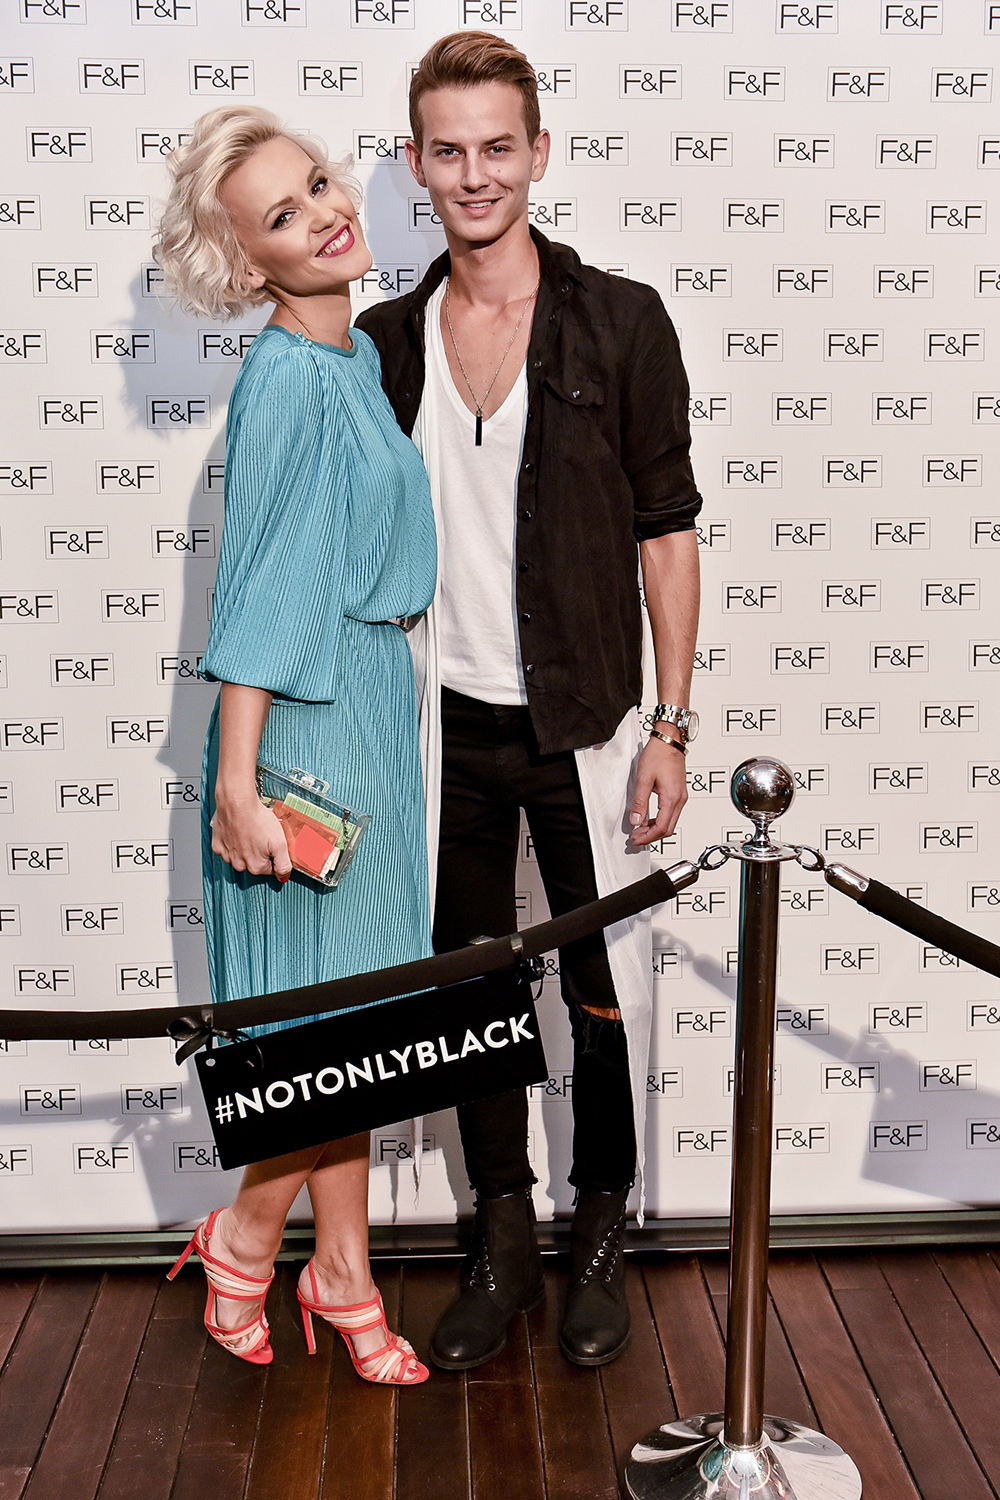 ff-event-not-only-black-fw2016-janatini-jana-tomas-4